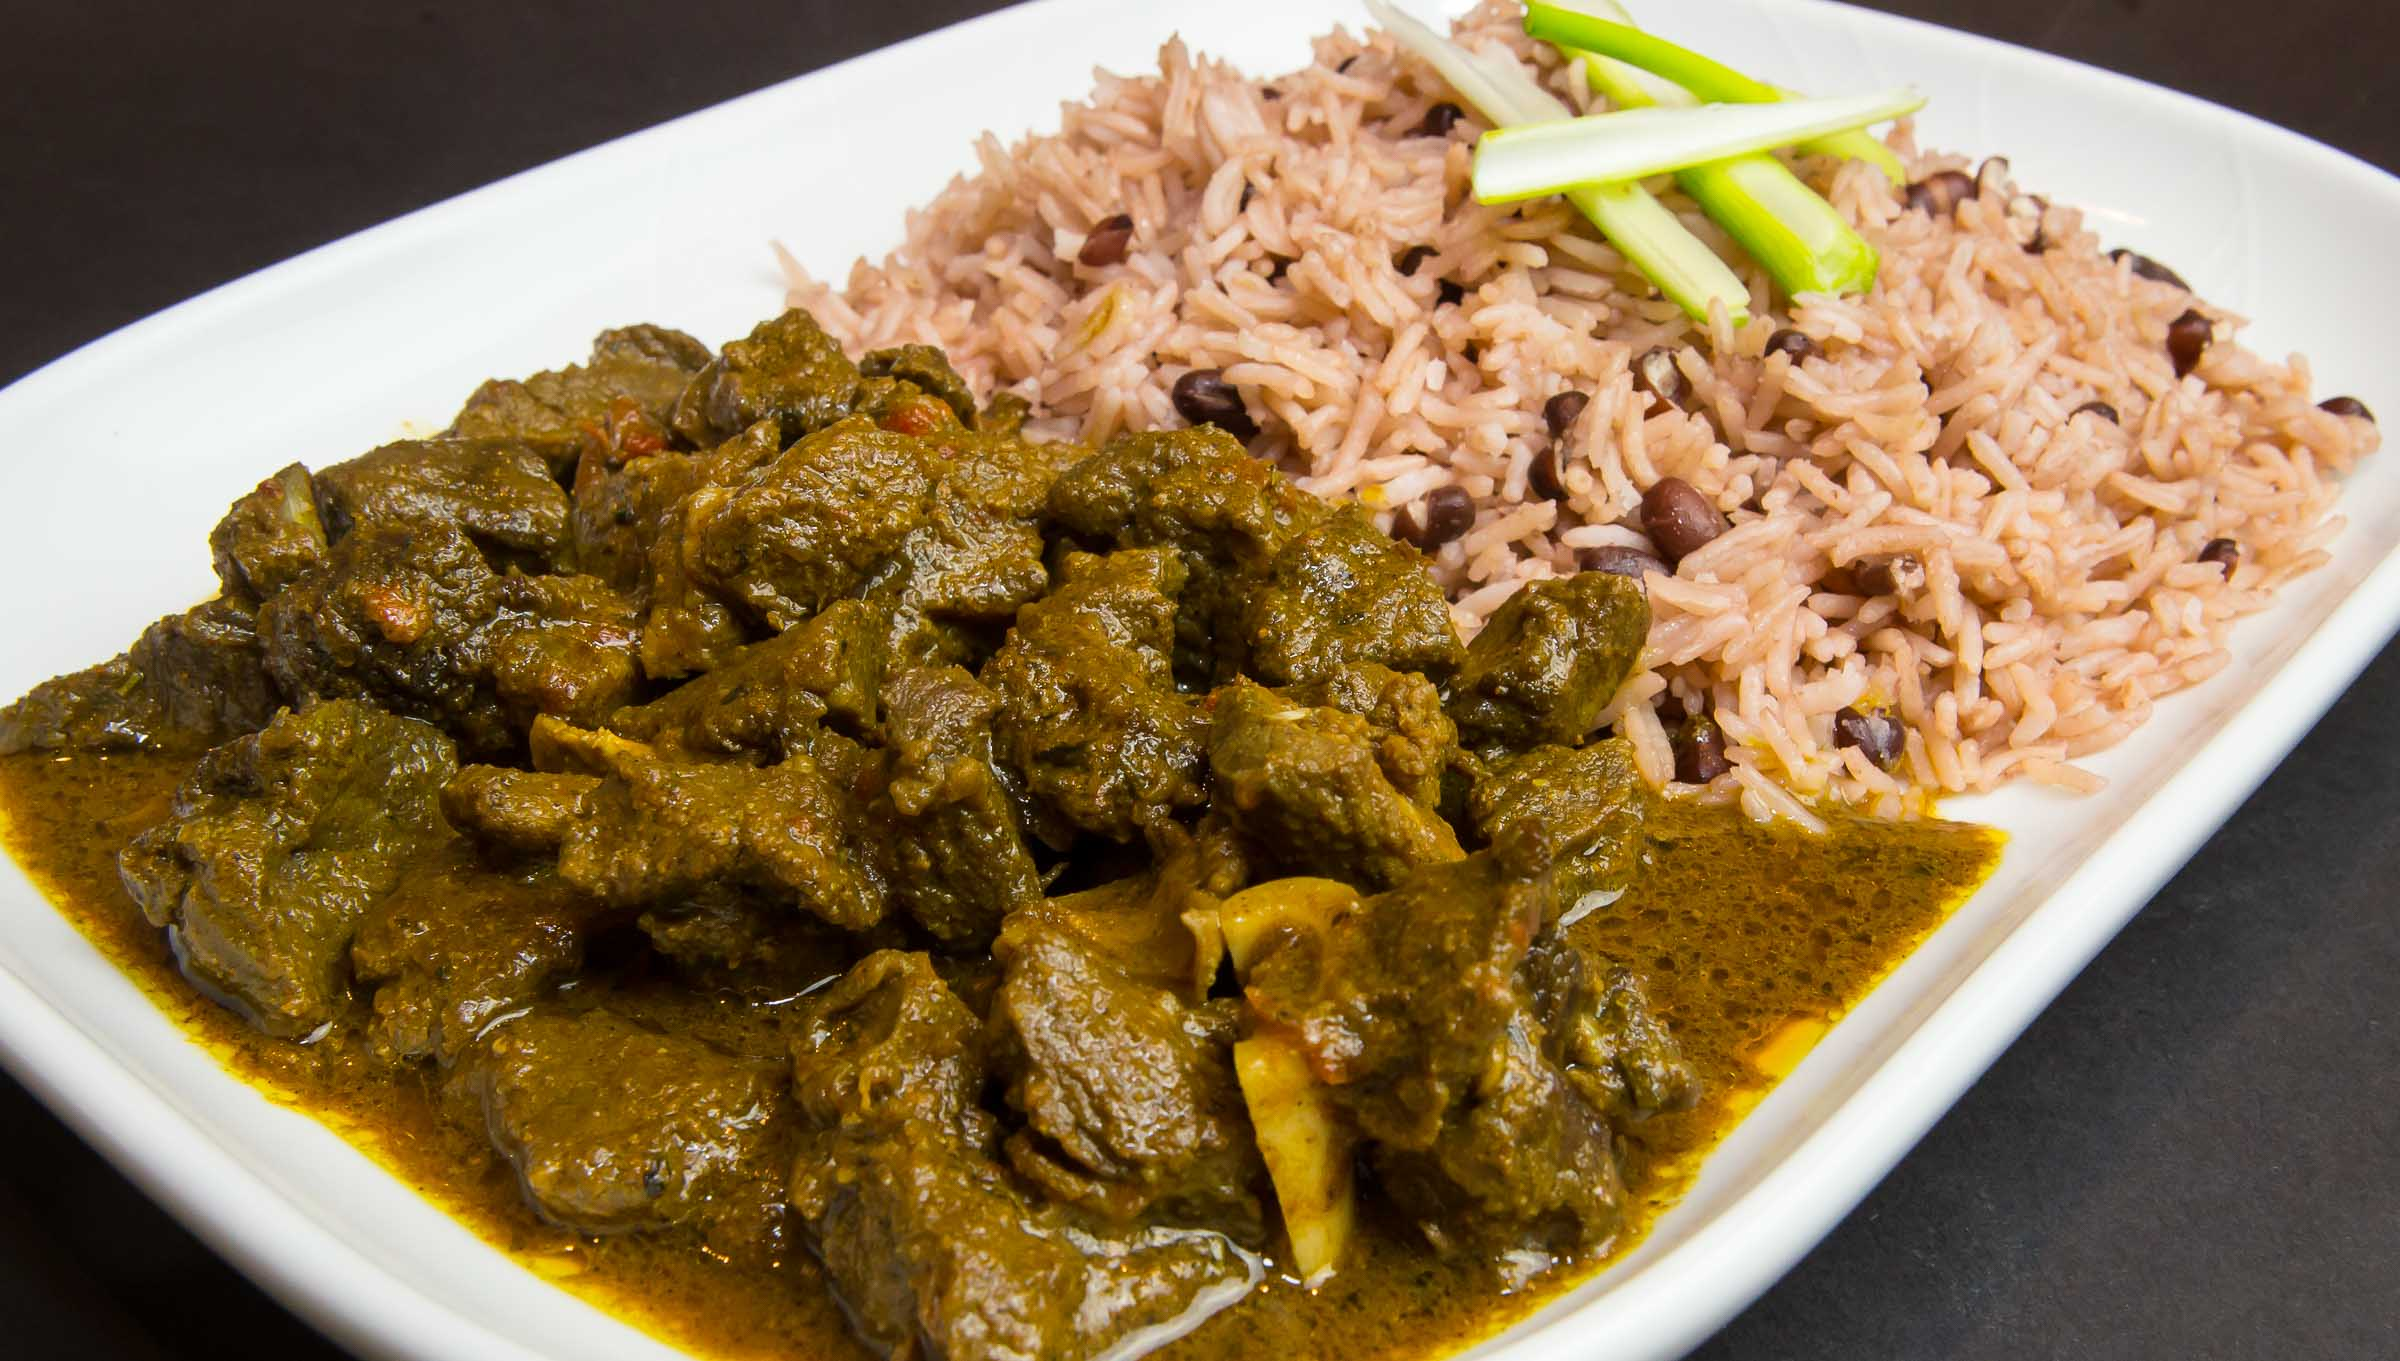 Catering - Authentic Jamaican Food and Bake Products